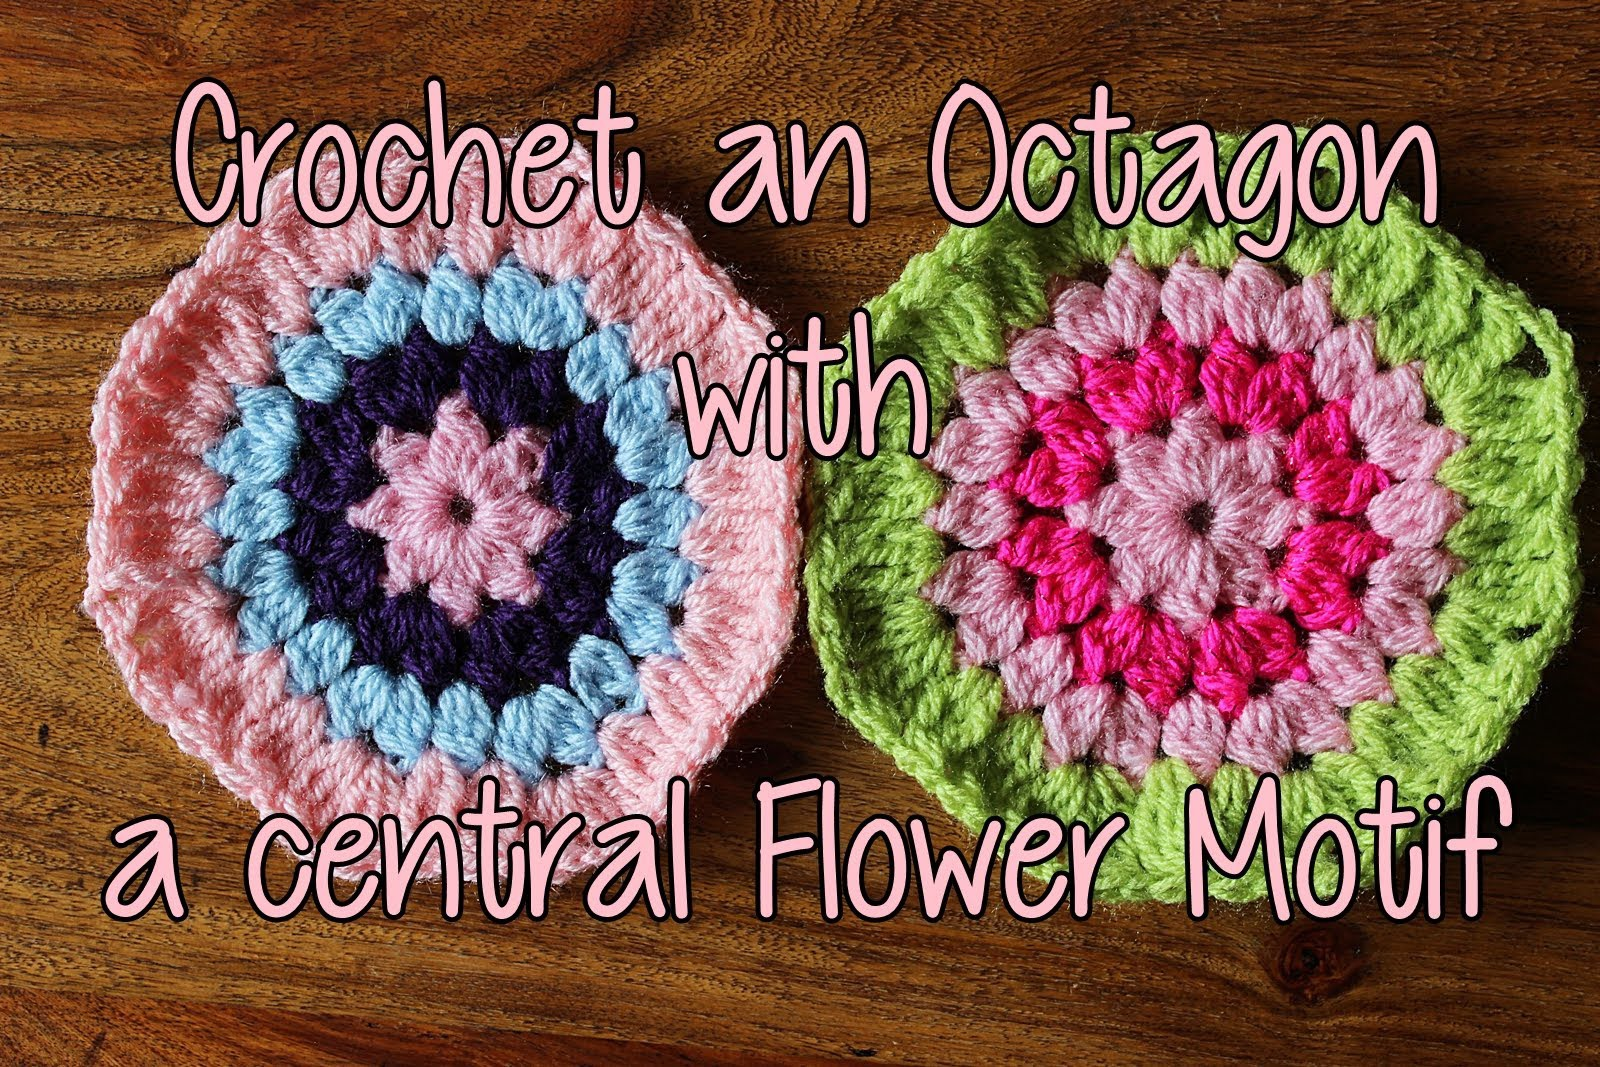 How to crochet an Octagon with a Central Flower